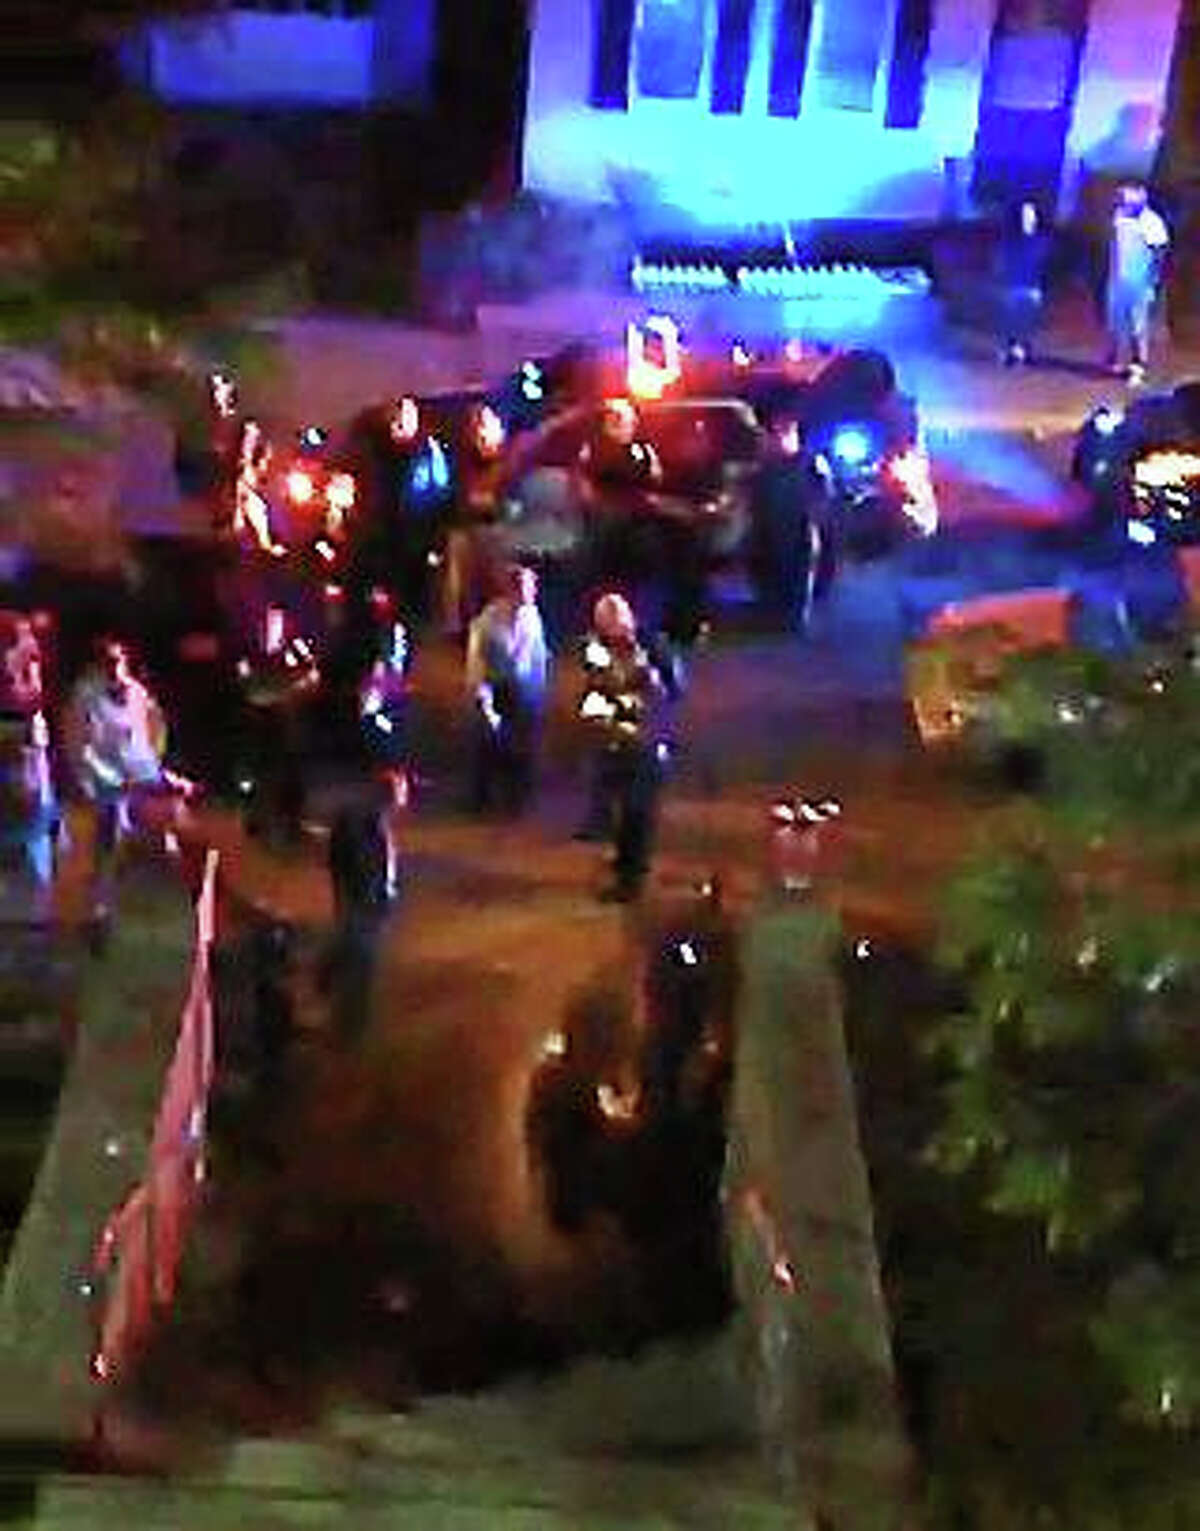 Video footage taken at Wharfside Commons on Ferry Street in Middletown, where police say fights broke out late Friday into early Saturday.